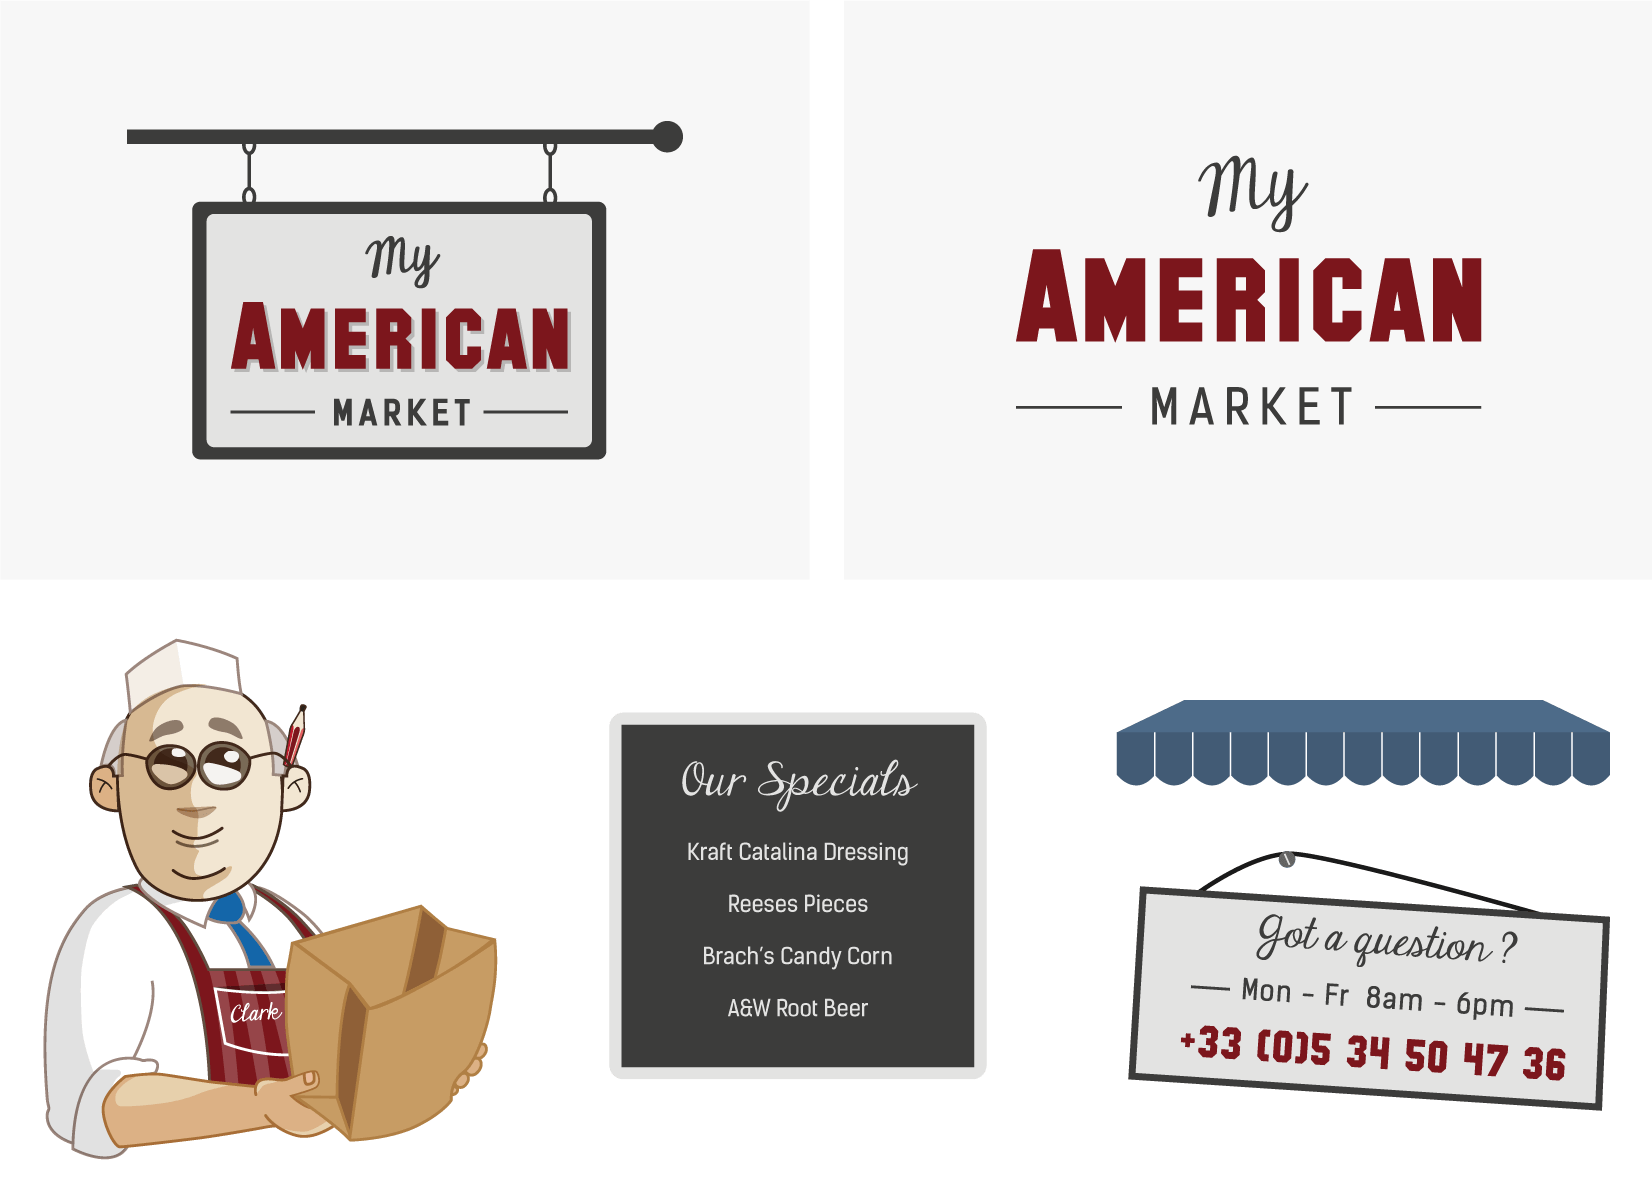 My American Market - client of Tapat web agency and creative digital agency - logo variations and illustration for branding